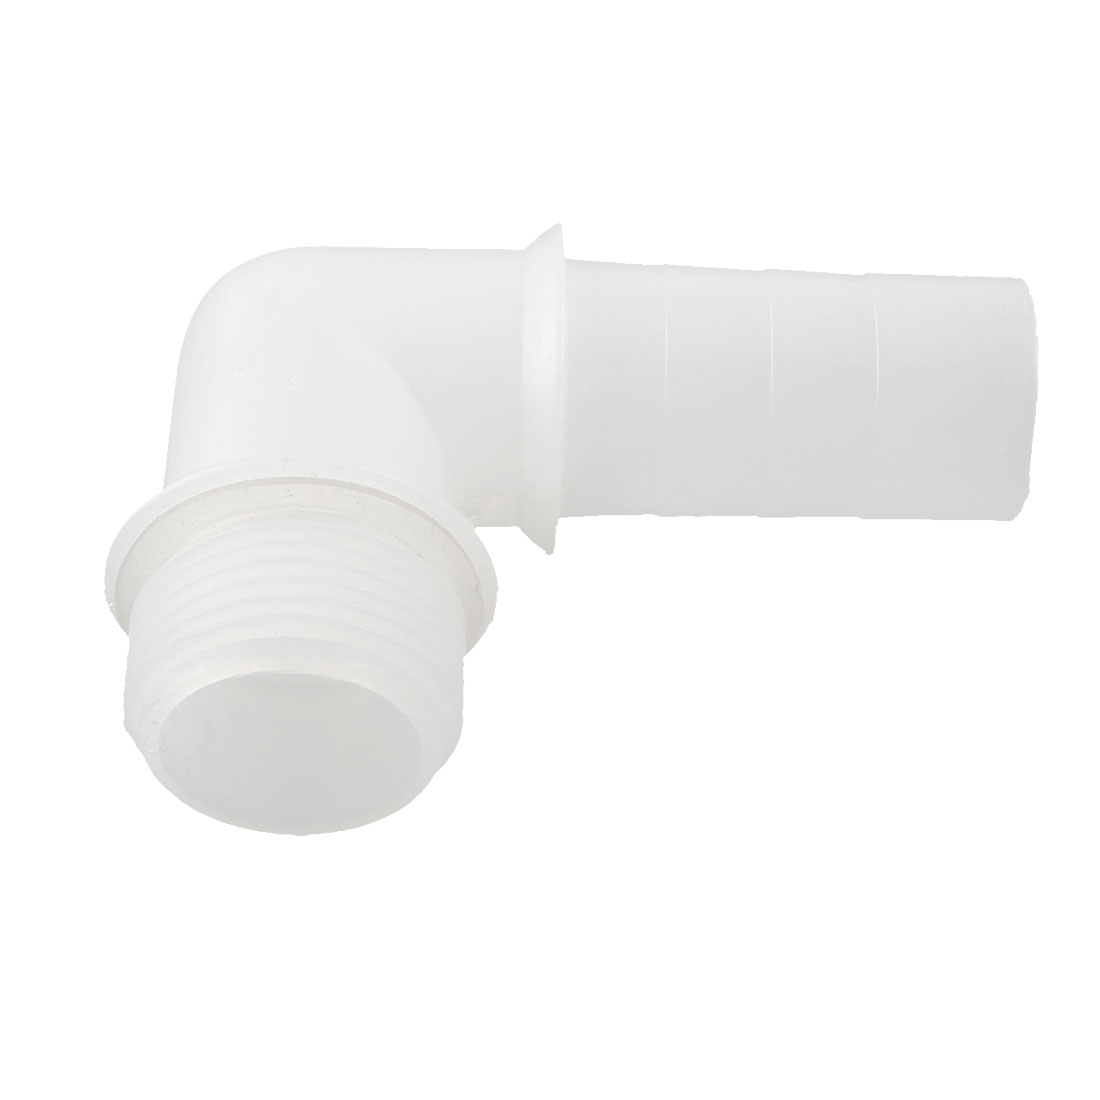 Clear White Plastic 90 Degree Pipe Hose Coupler Adaptor 32mmx22mm Replaceable